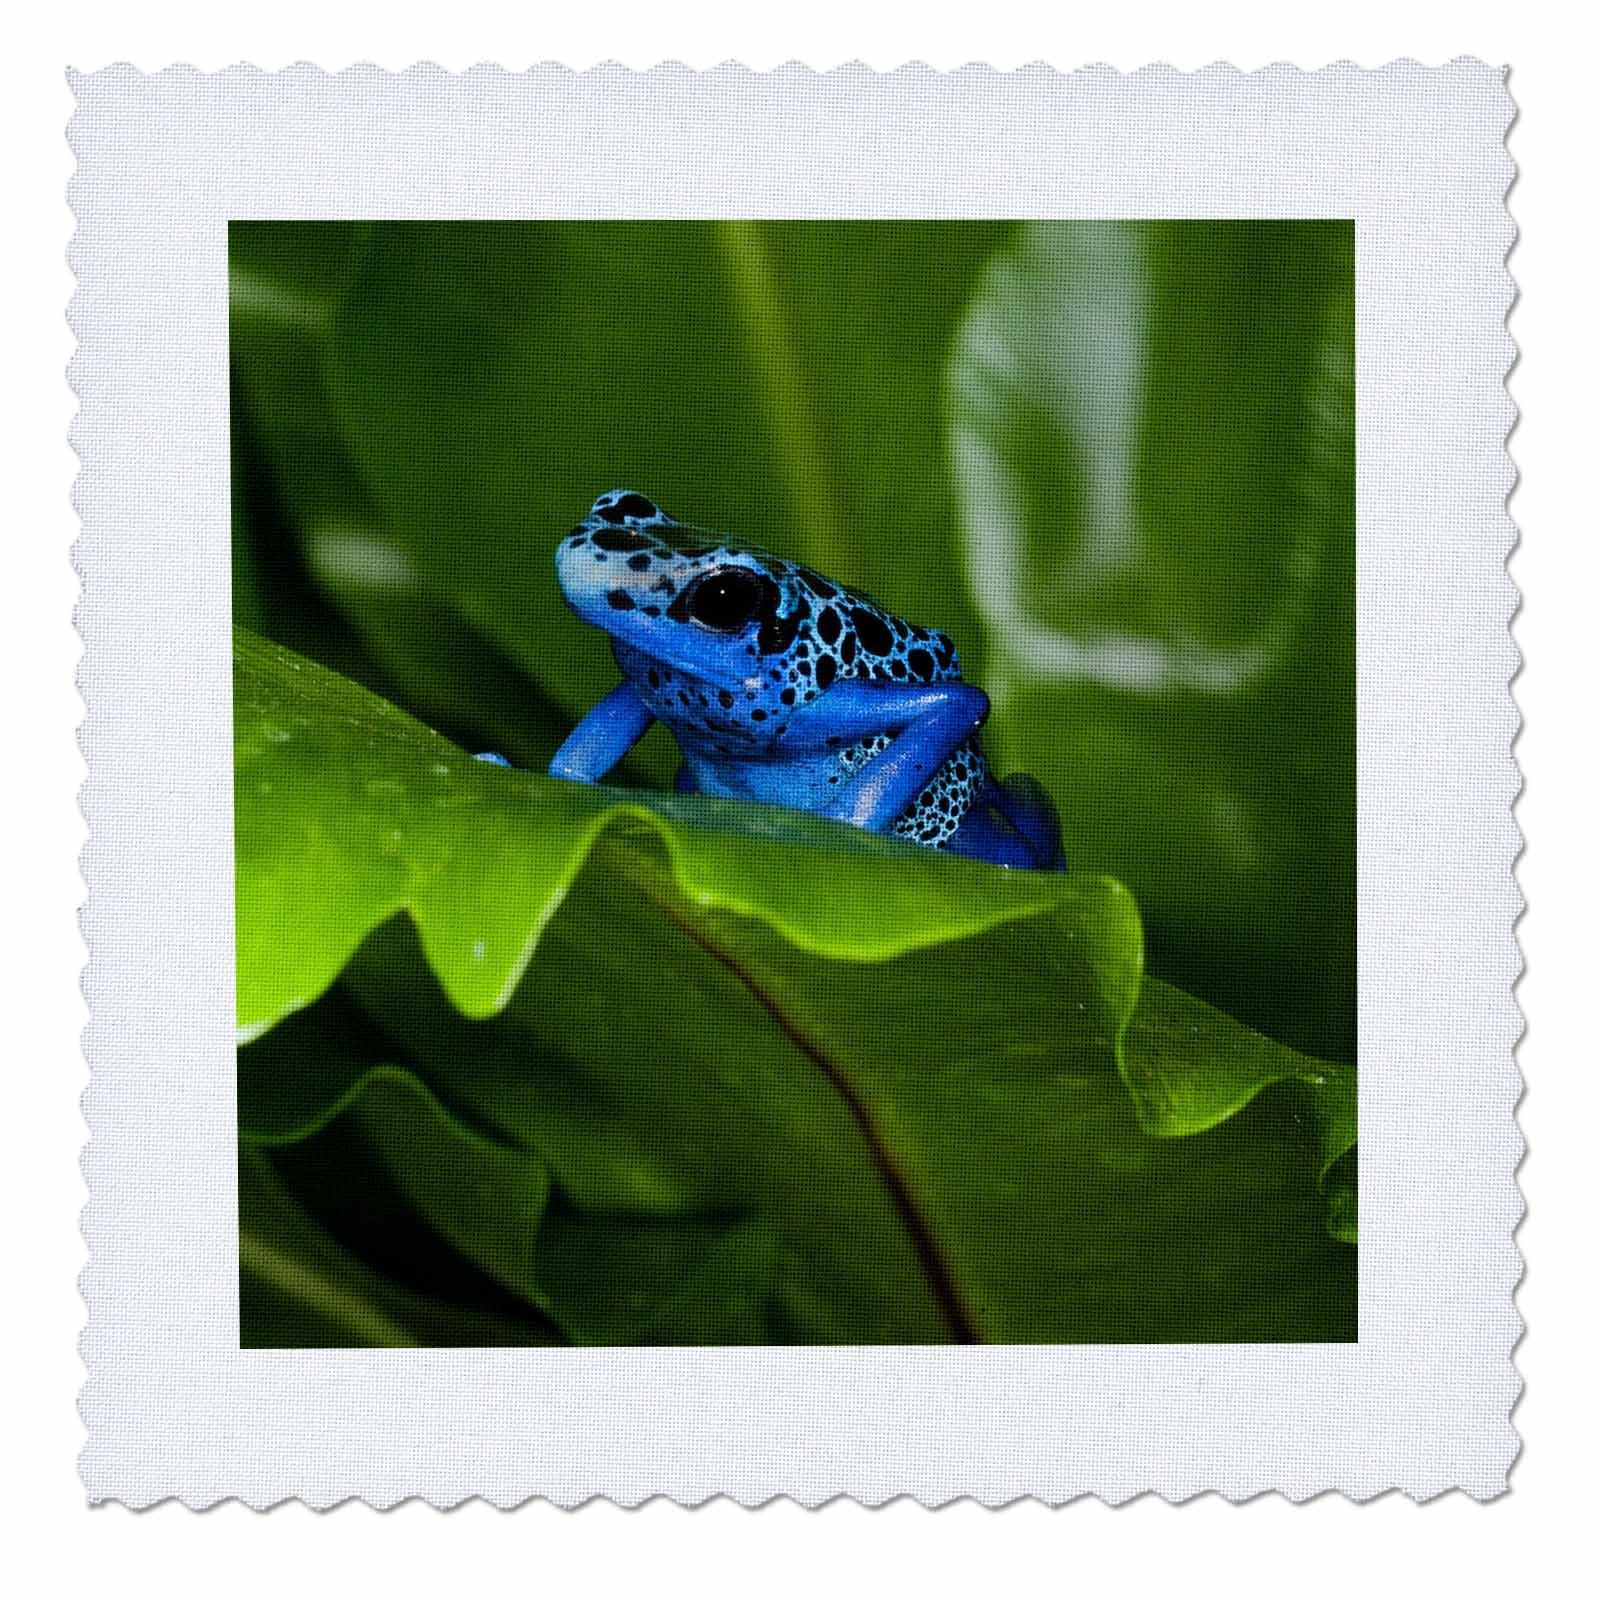 3dRose Danita Delimont - Frogs - South America, Suriname. Blue dart frog on leaf. - 16x16 inch quilt square (qs_278323_6)